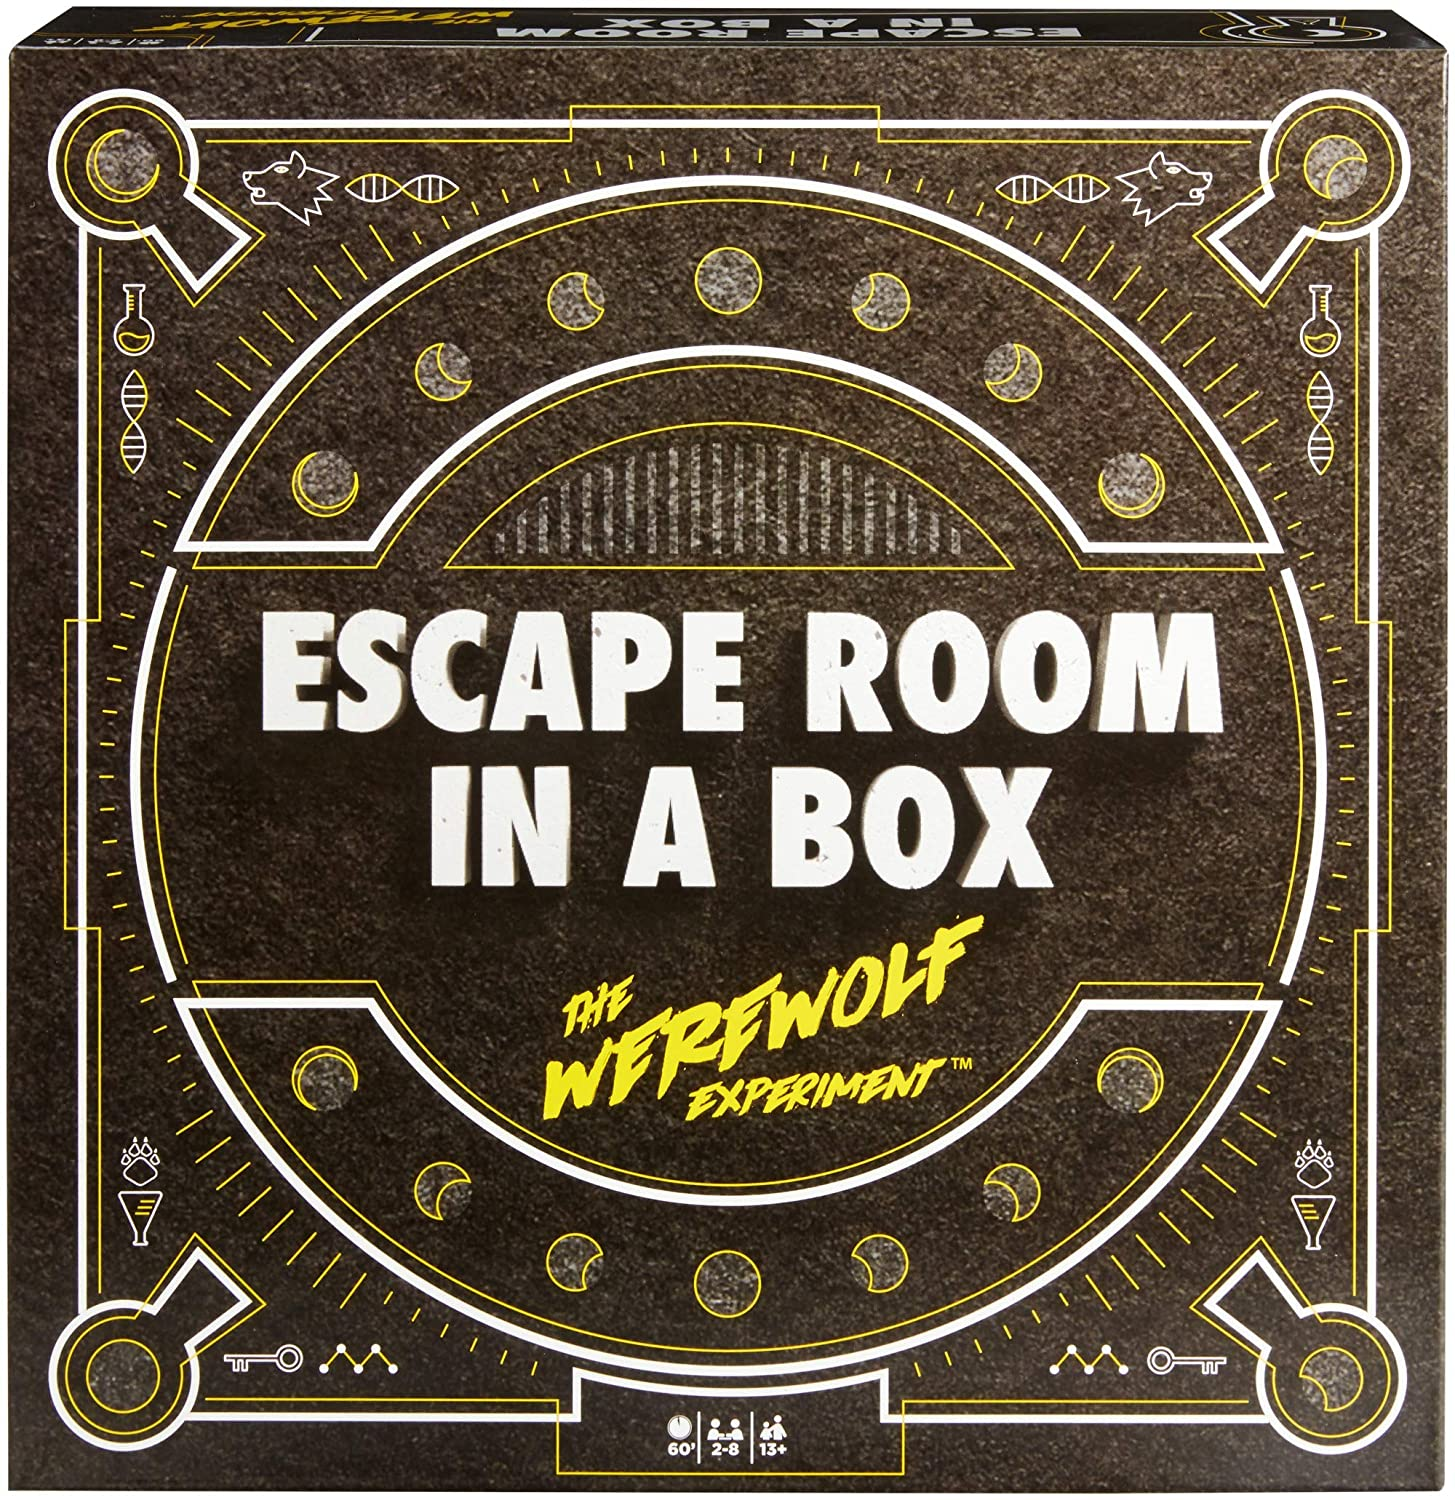 Buy Escape Room In A Box The Werewolf Experiment Game Online At Low Prices In India Amazon In